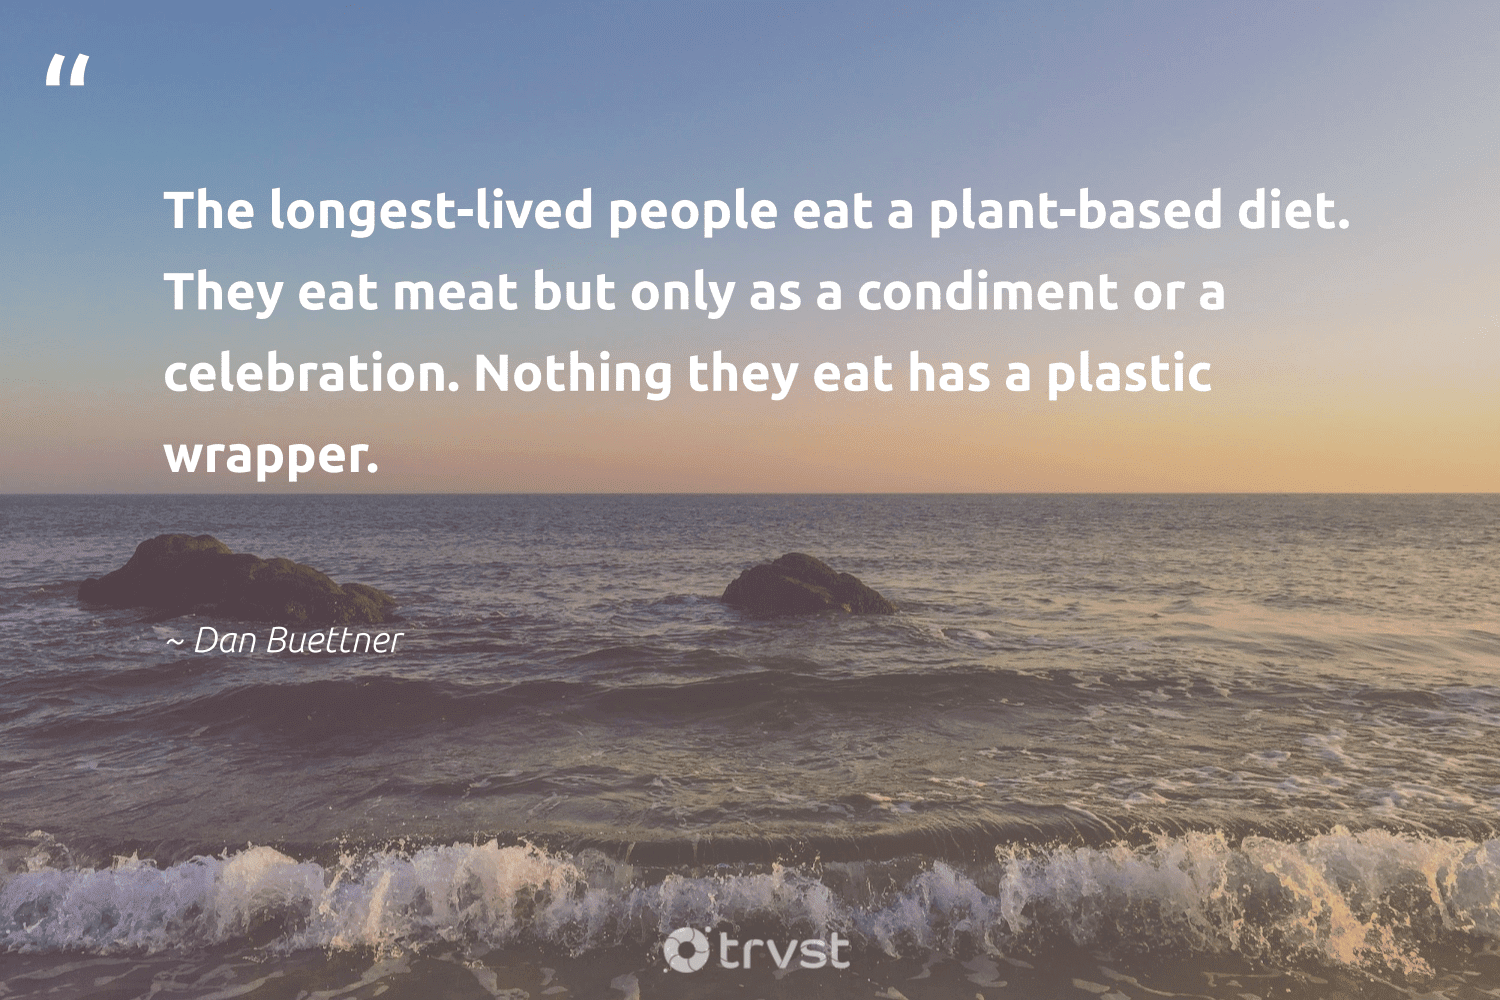 """""""The longest-lived people eat a plant-based diet. They eat meat but only as a condiment or a celebration. Nothing they eat has a plastic wrapper.""""  - Dan Buettner #trvst #quotes #plasticwaste #plantbased #plastic #plasticfree #waronwaste #saveourplanet #bethechange #breakfreefromplastic #environment #waste"""